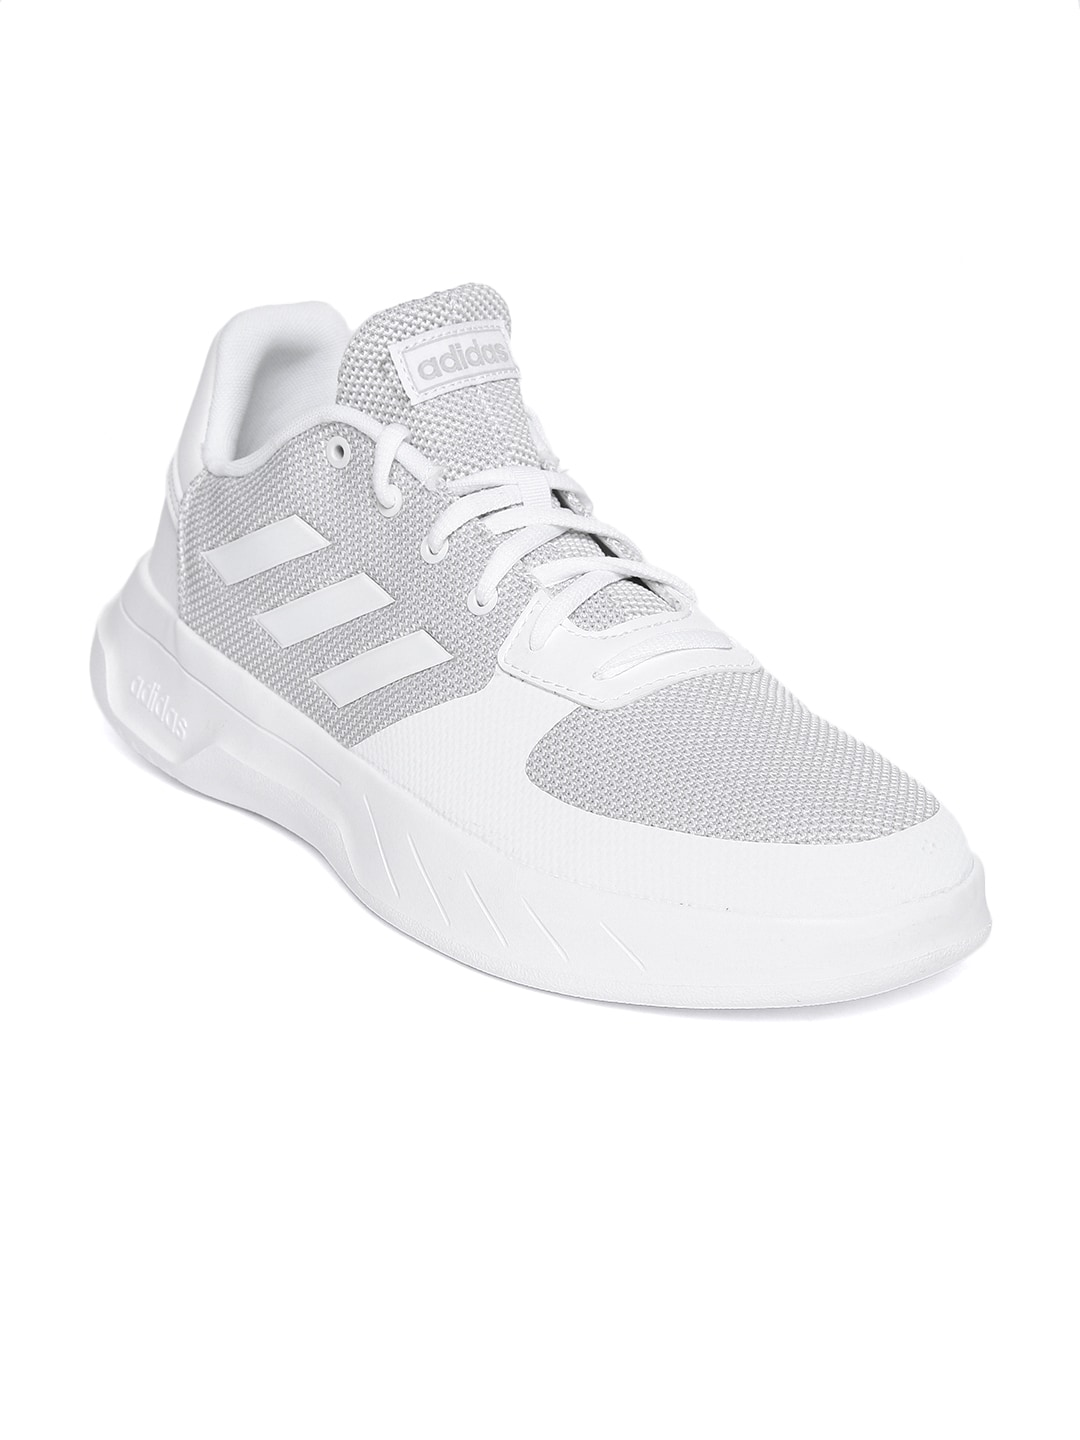 fd692561a3bd Adidas Lifestyle Tights Casual Shoes - Buy Adidas Lifestyle Tights Casual  Shoes online in India